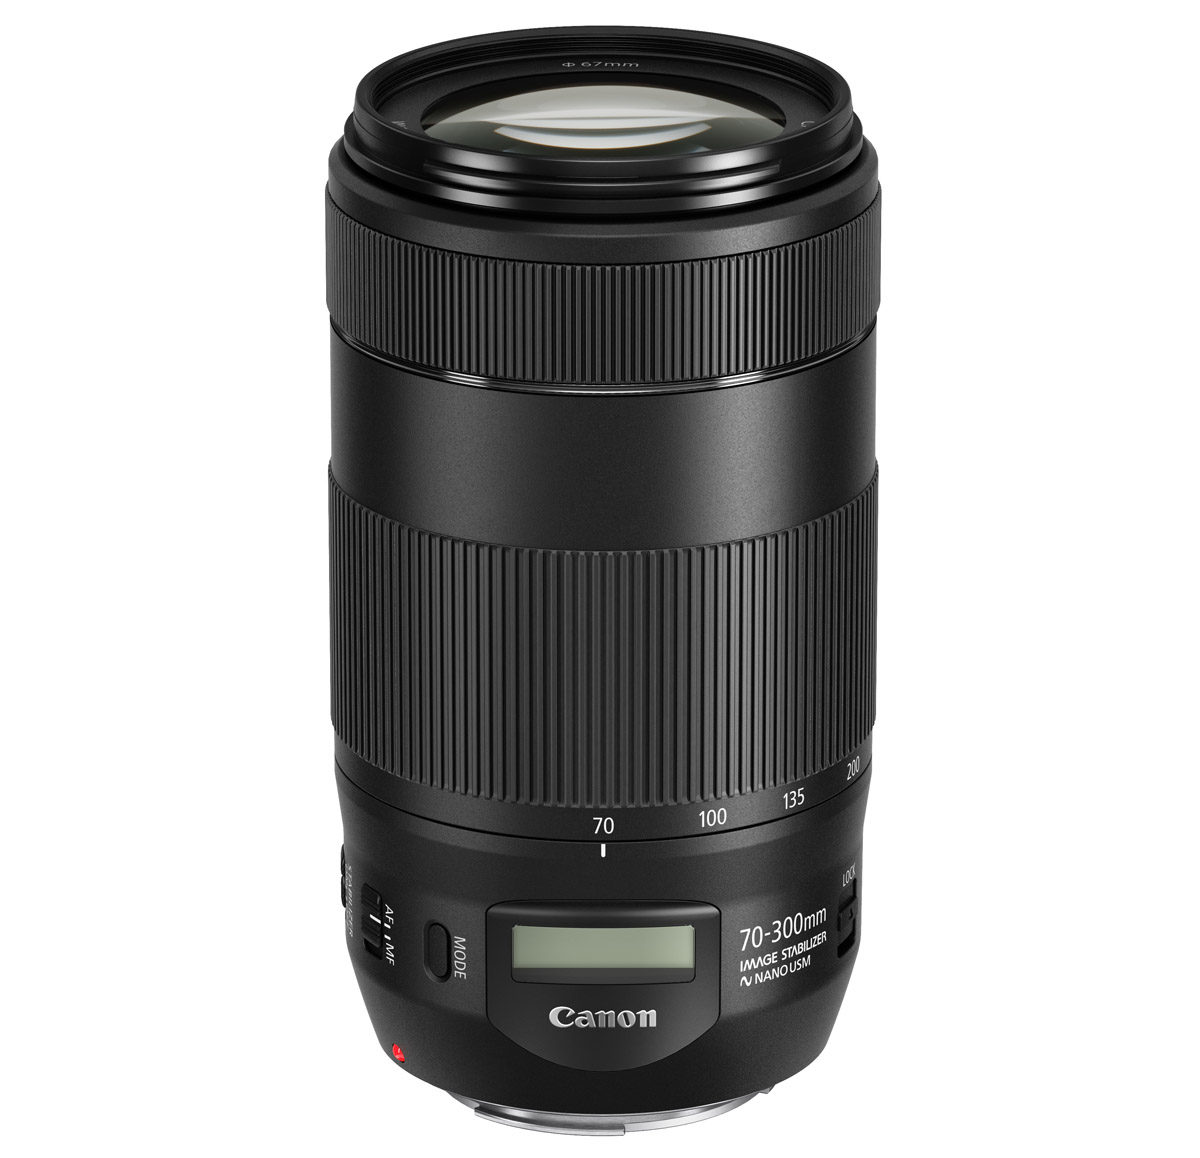 canon EF 70-300 mm f/4-5,6 is ii usm telezoom lcd display nano usm